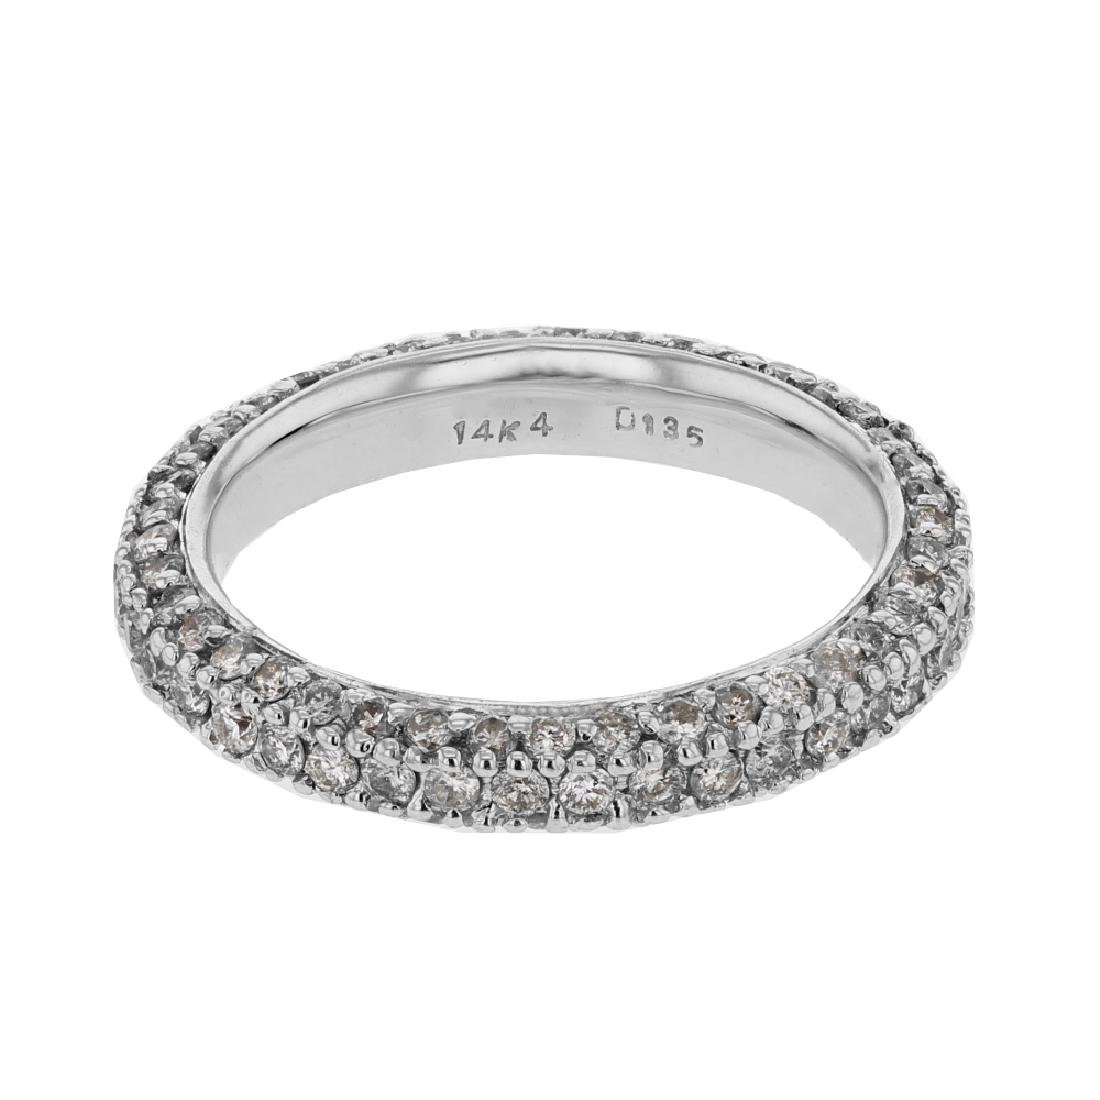 1.35 CTW 14K White Gold Ladies Band Ring